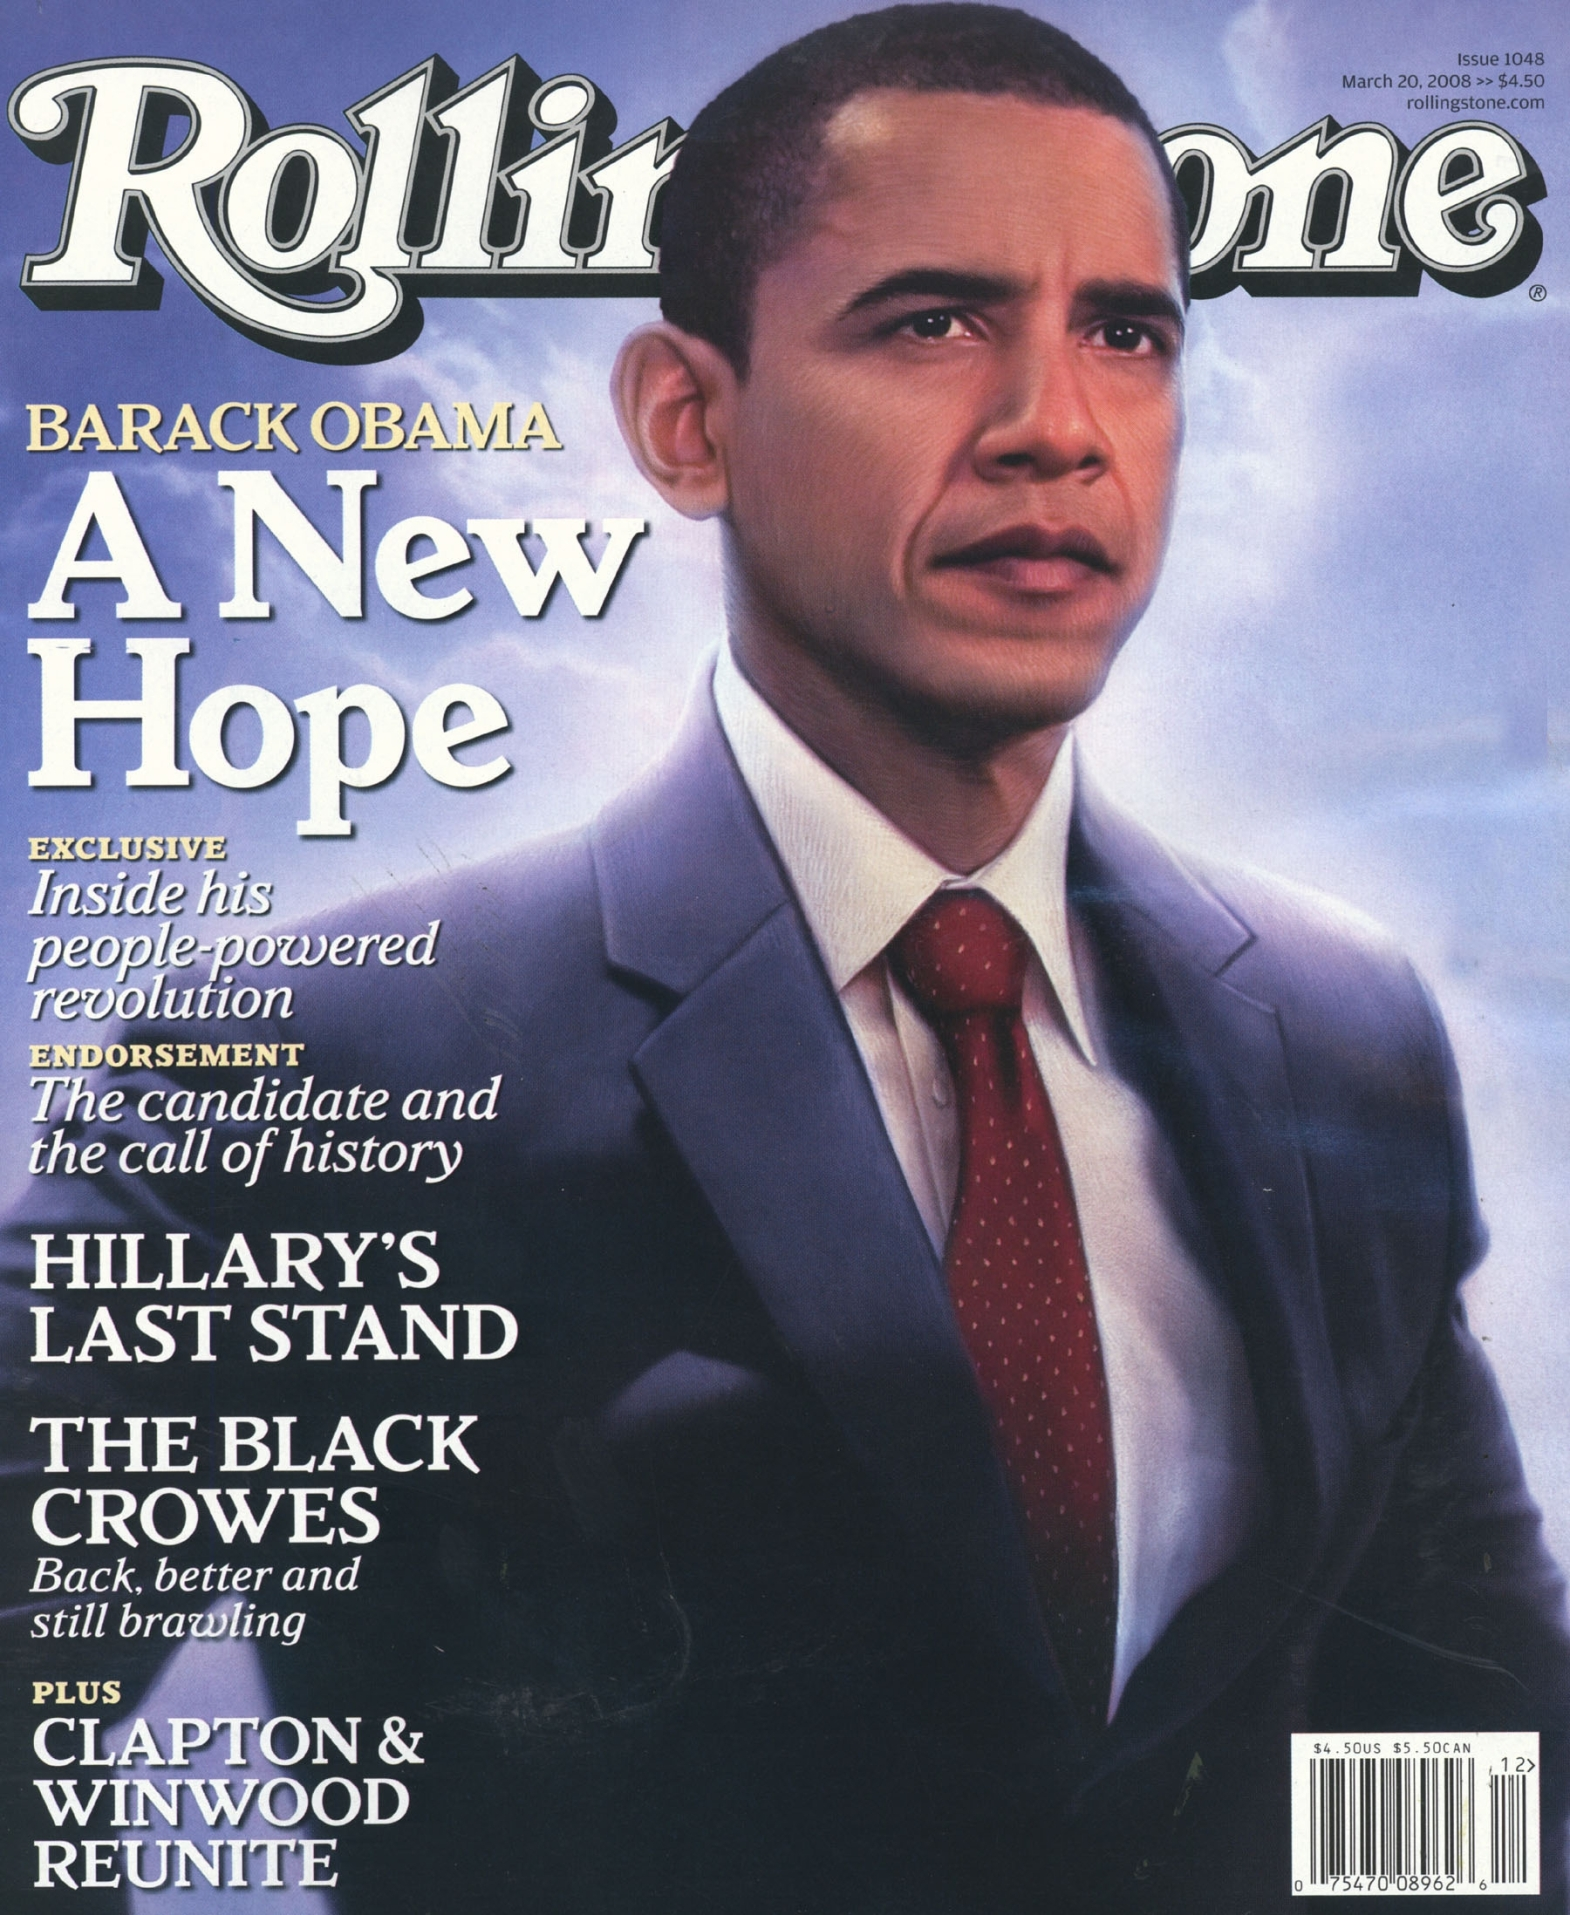 Rolling stone magazine front cover – barack obama march 08 issue